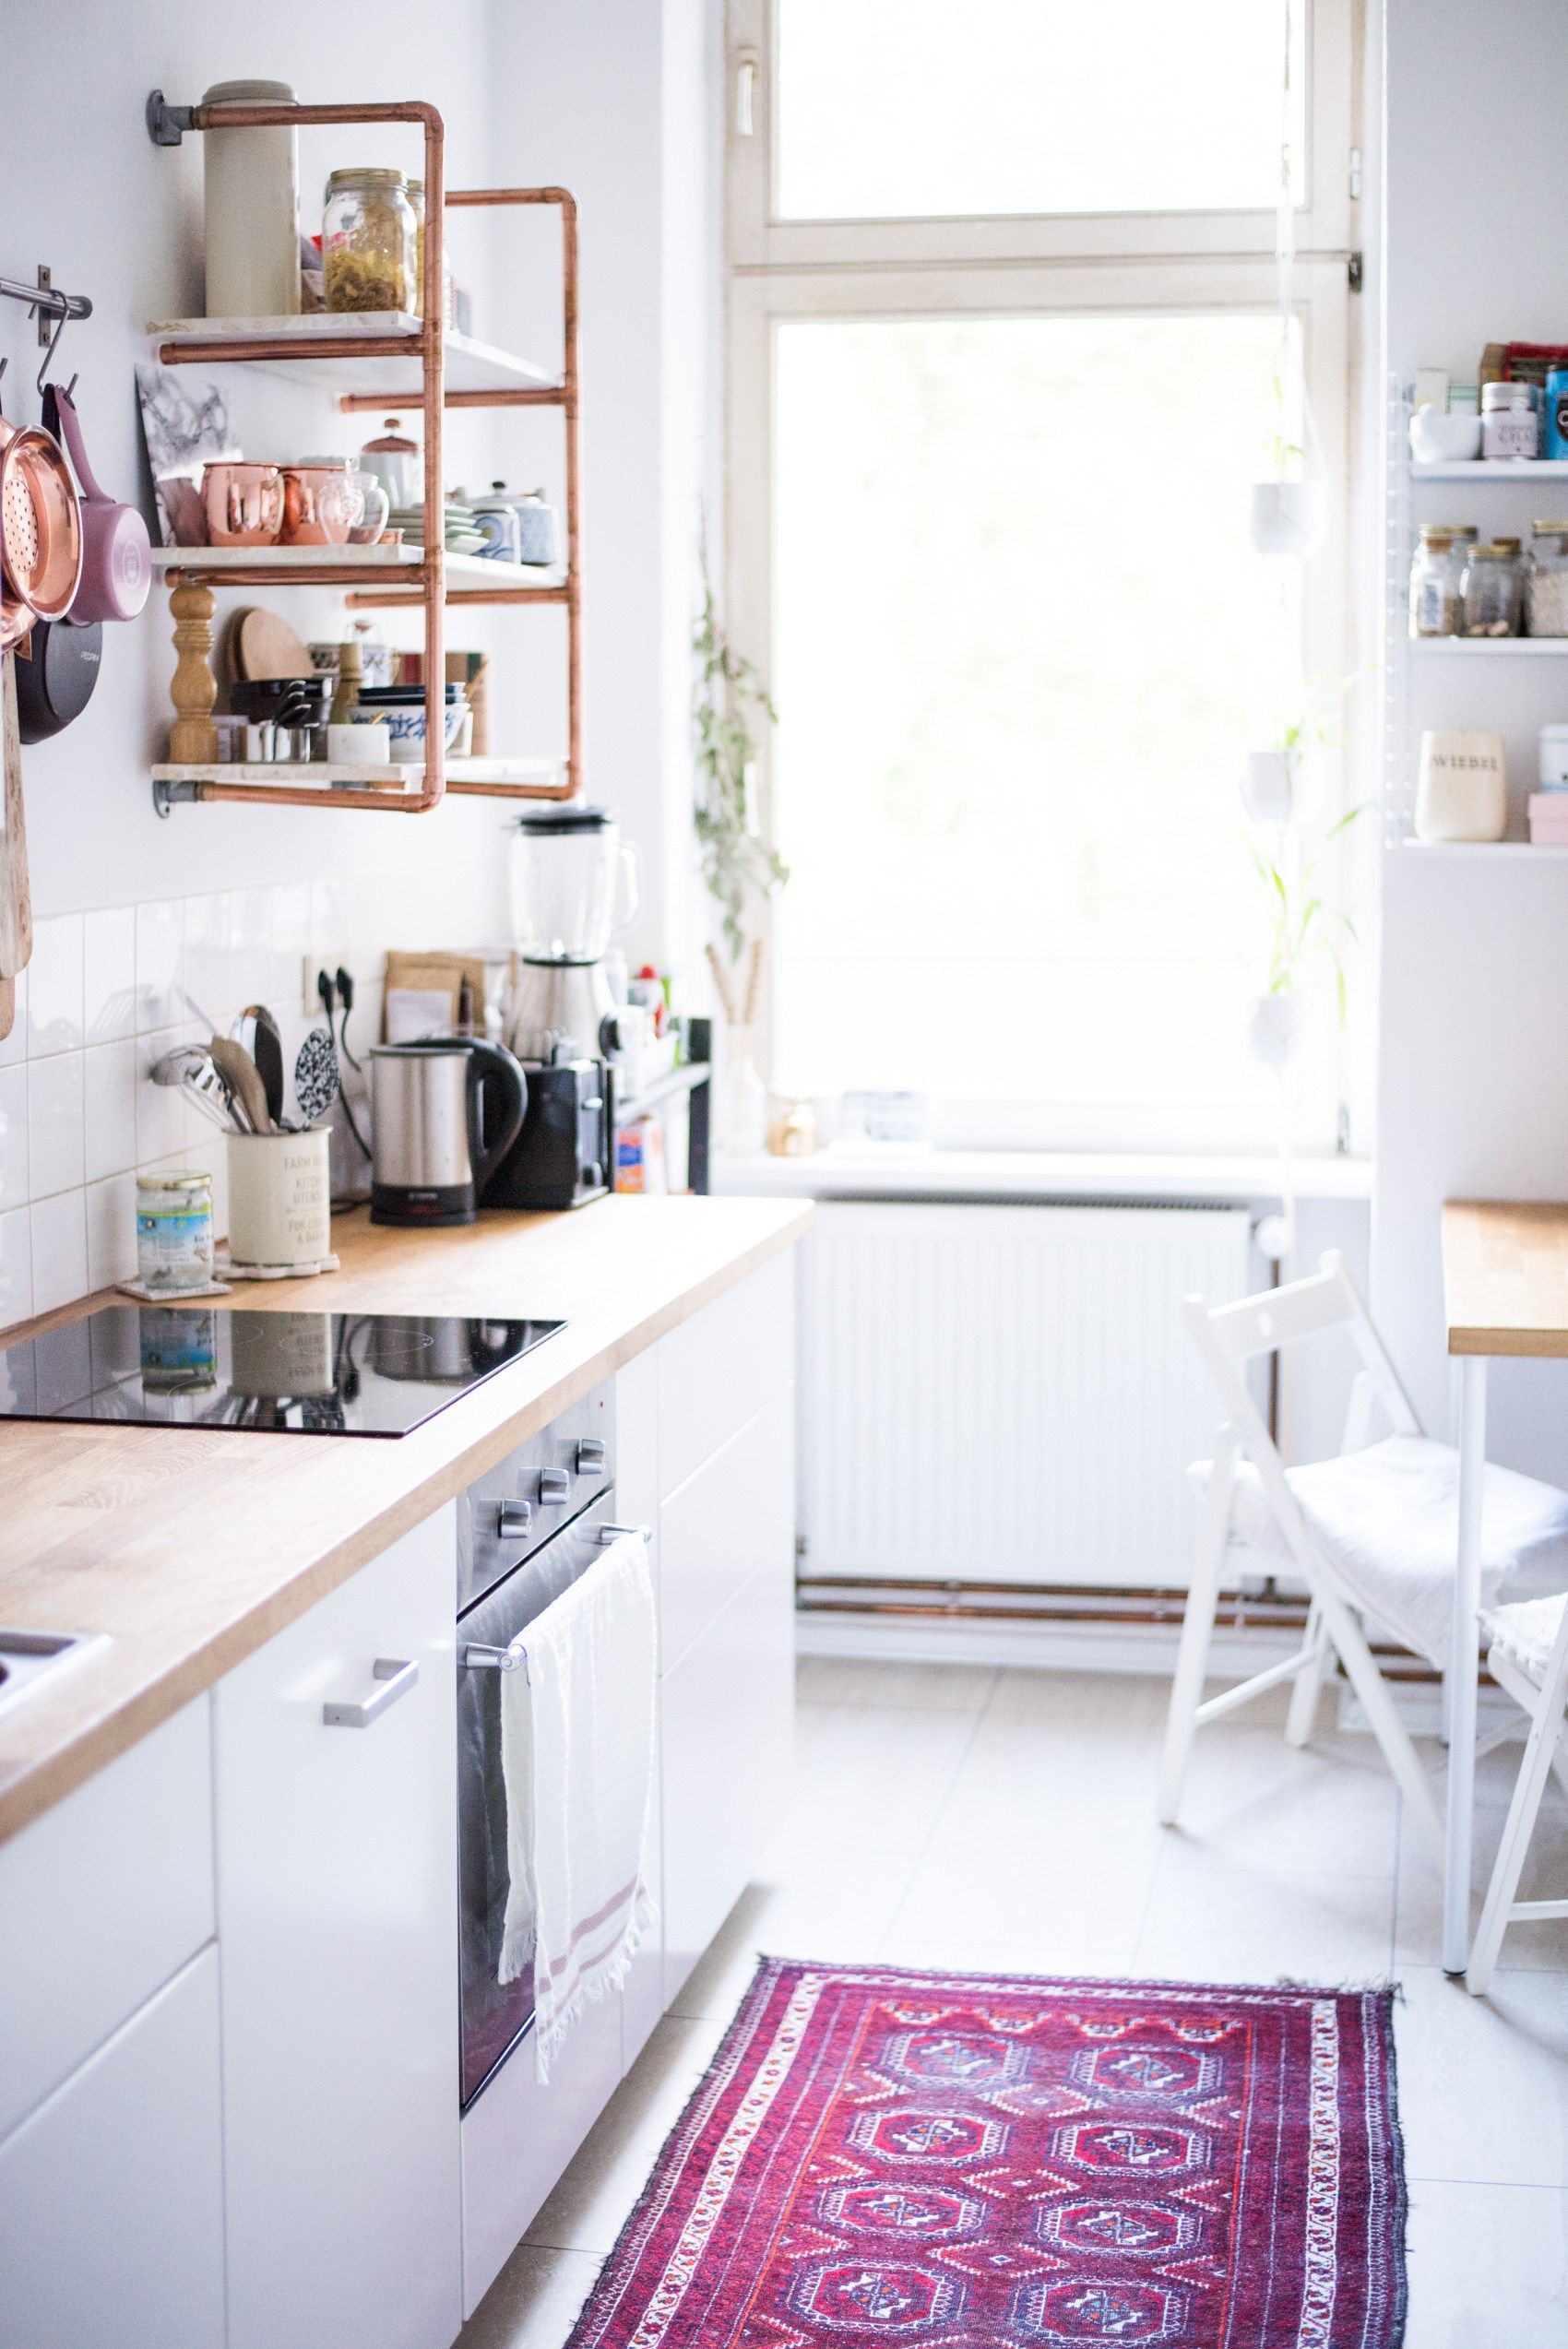 Küchen Einrichten Ideen 10 Low Budget Interior Tips For Your Kitchen | Küche ...